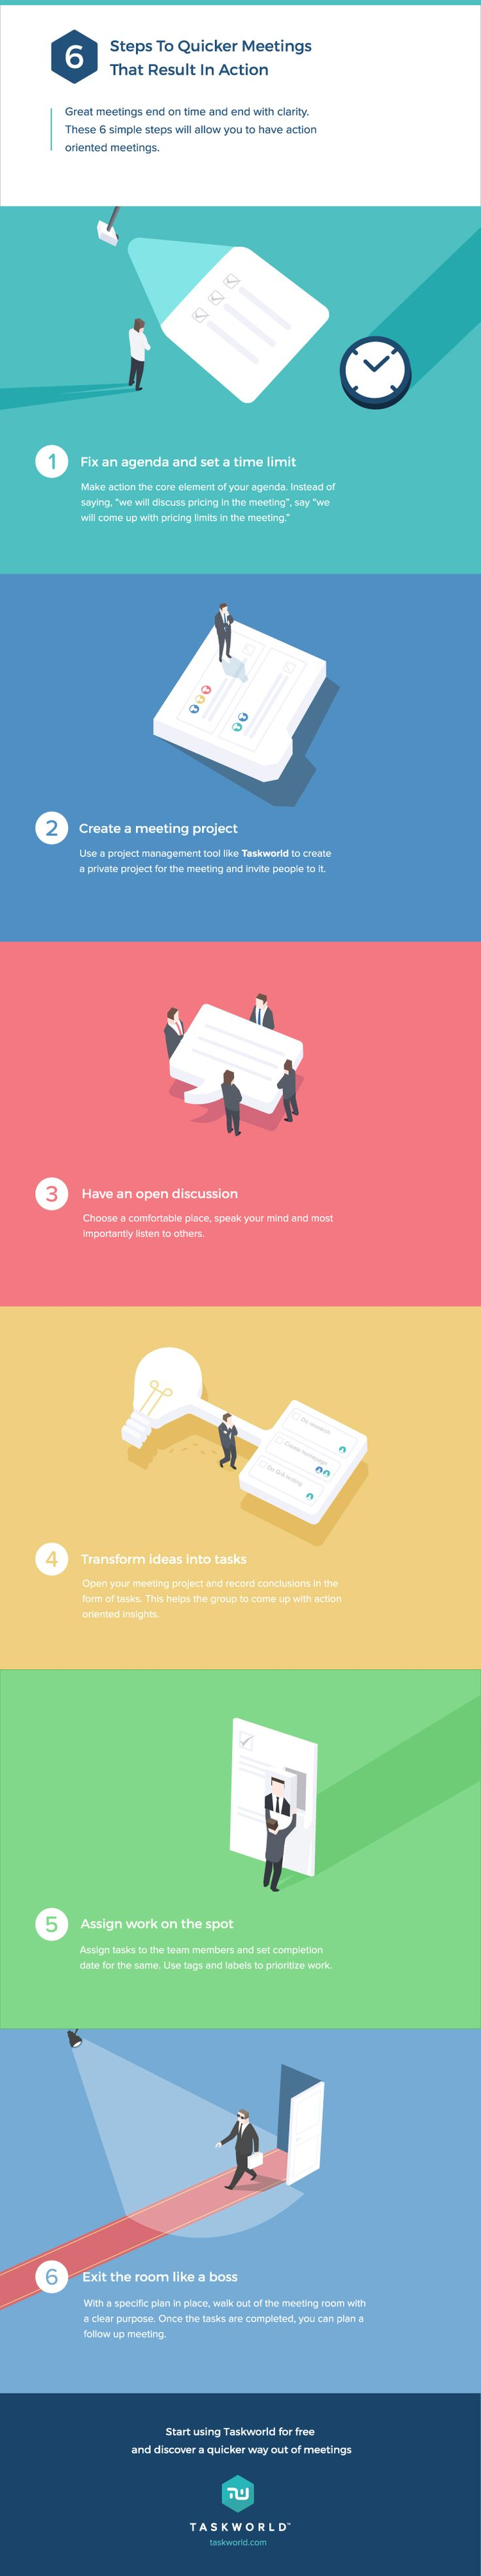 6 Steps to Quicker Meetings that Result in Action #Infographic